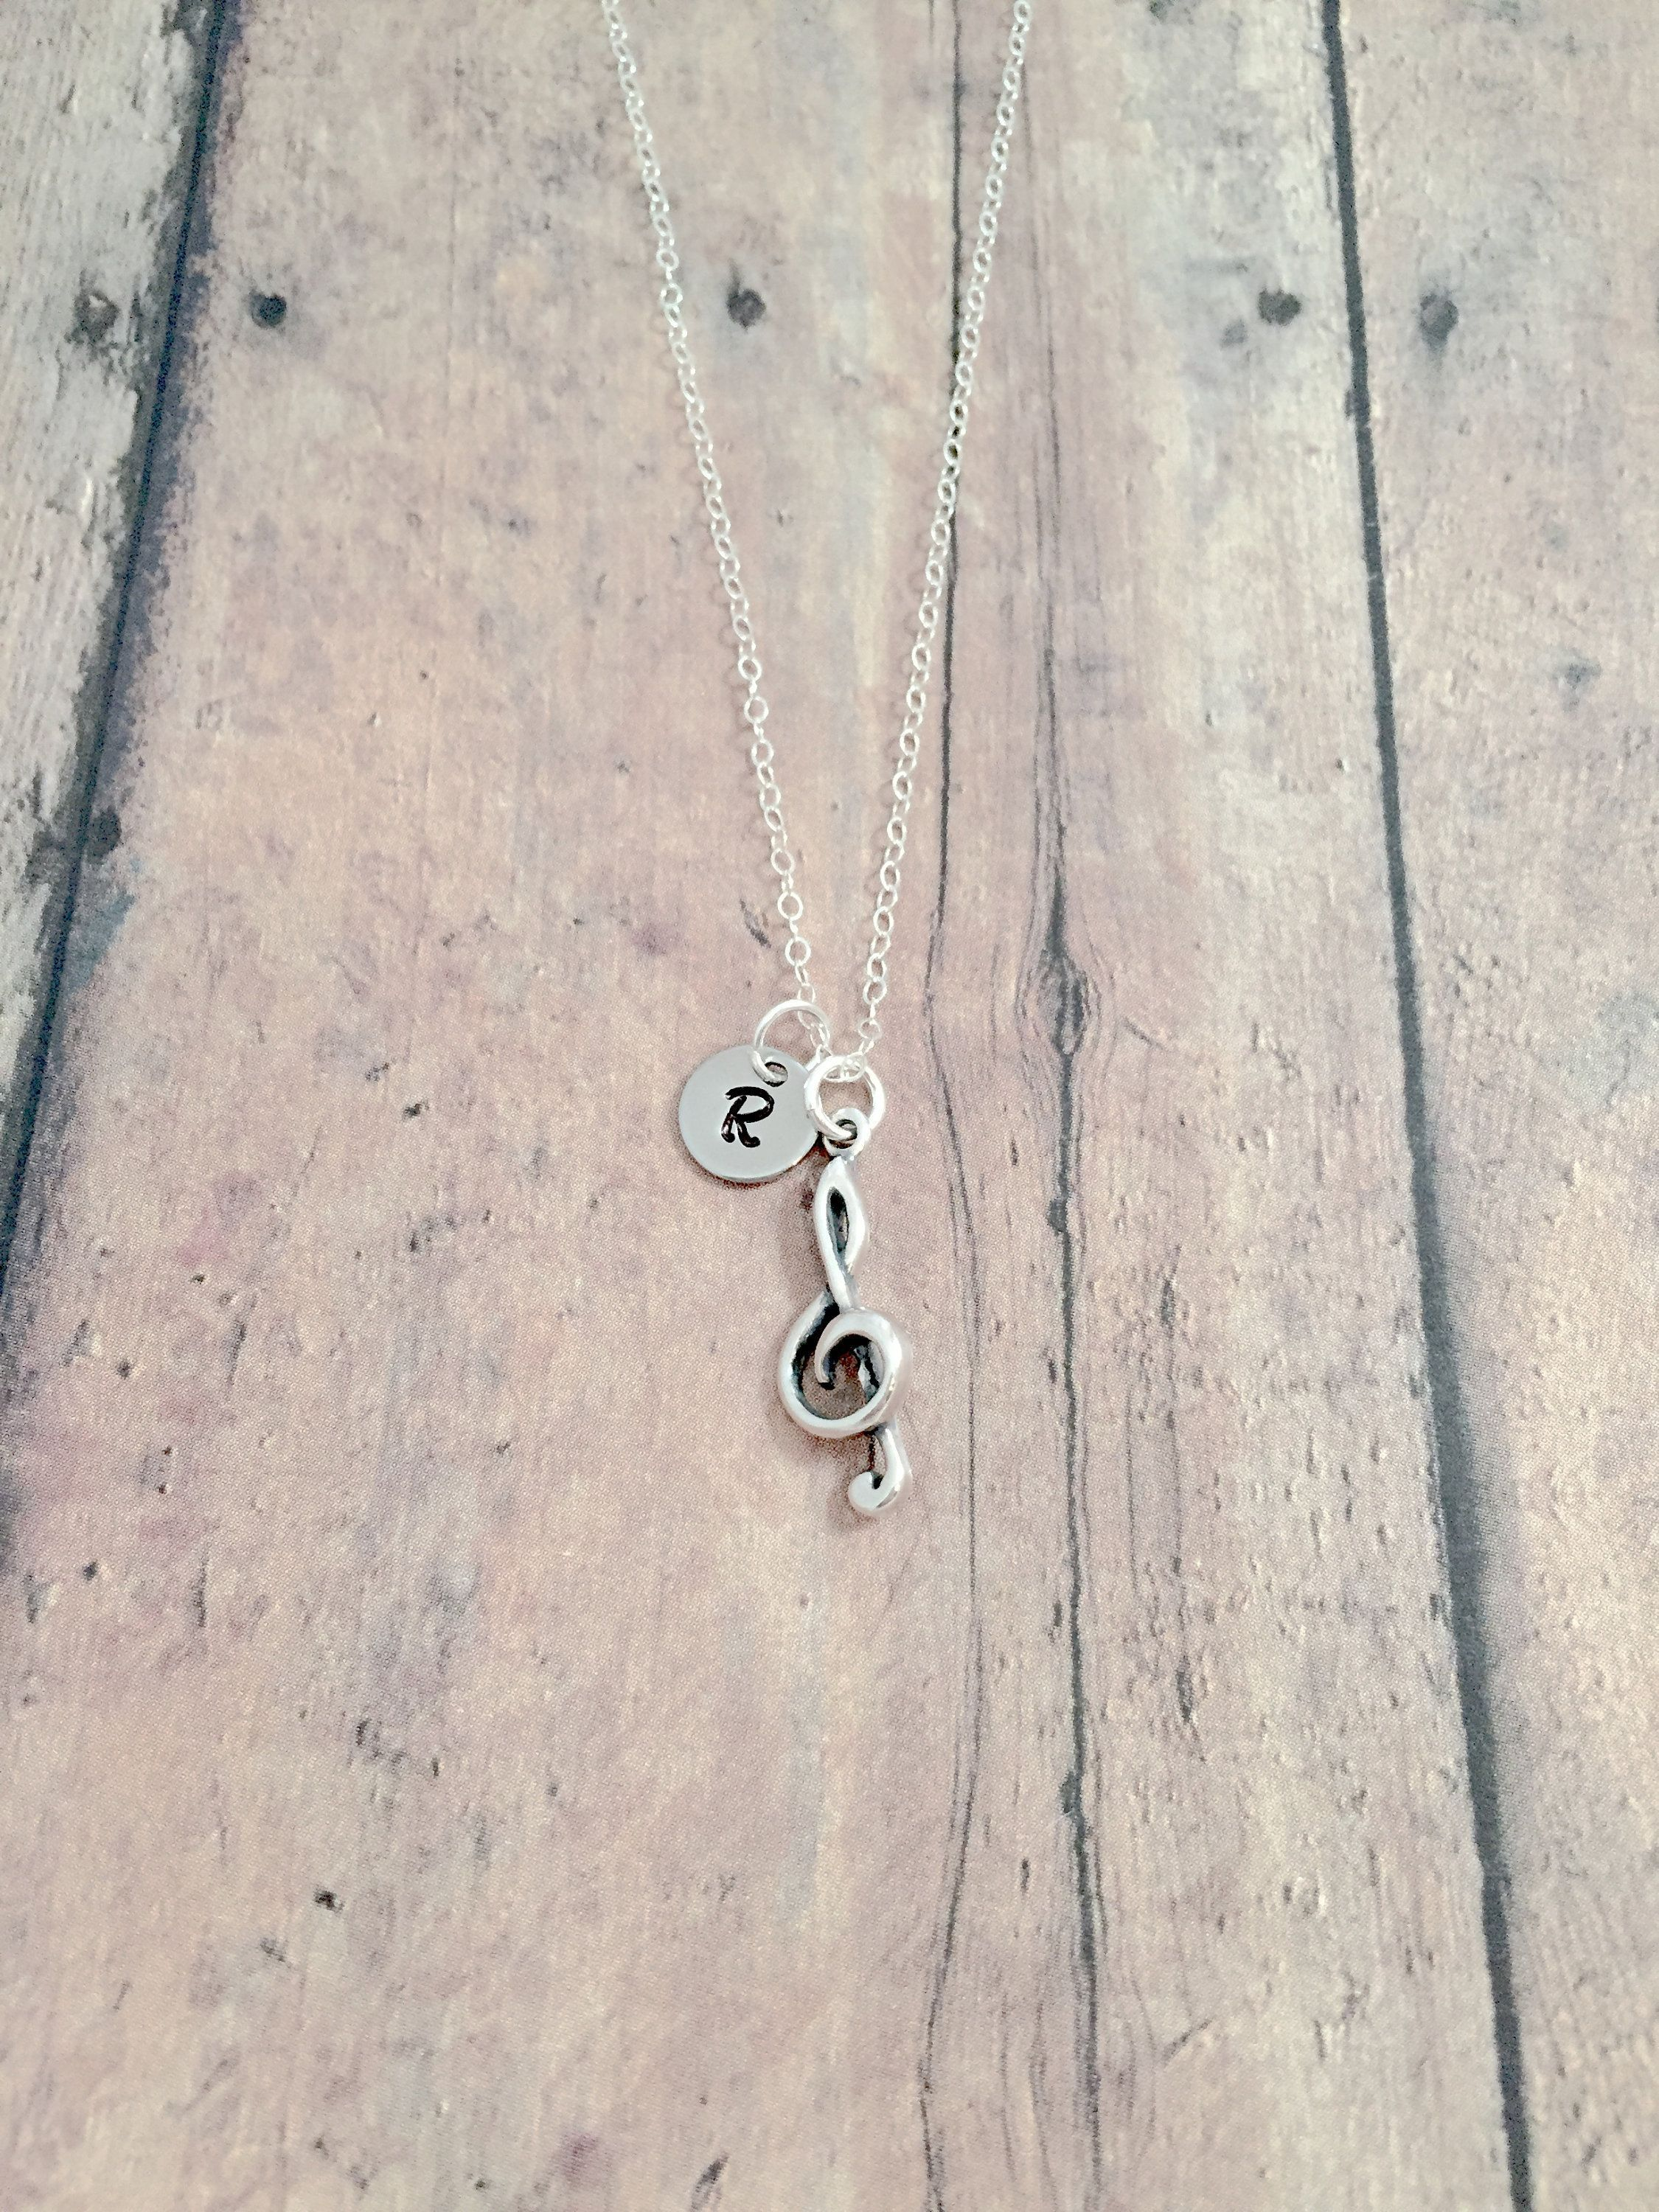 Treble clef initial necklace (sterling silver) - treble clef jewelry, music jewelry, band jewelry, treble clef necklace, treble clef gift #trebleclef Treble clef initial necklace (sterling silver) - treble clef jewelry, music jewelry, band jewelry, treble clef necklace, treble clef gift #trebleclef Treble clef initial necklace (sterling silver) - treble clef jewelry, music jewelry, band jewelry, treble clef necklace, treble clef gift #trebleclef Treble clef initial necklace (sterling silver) - t #trebleclef